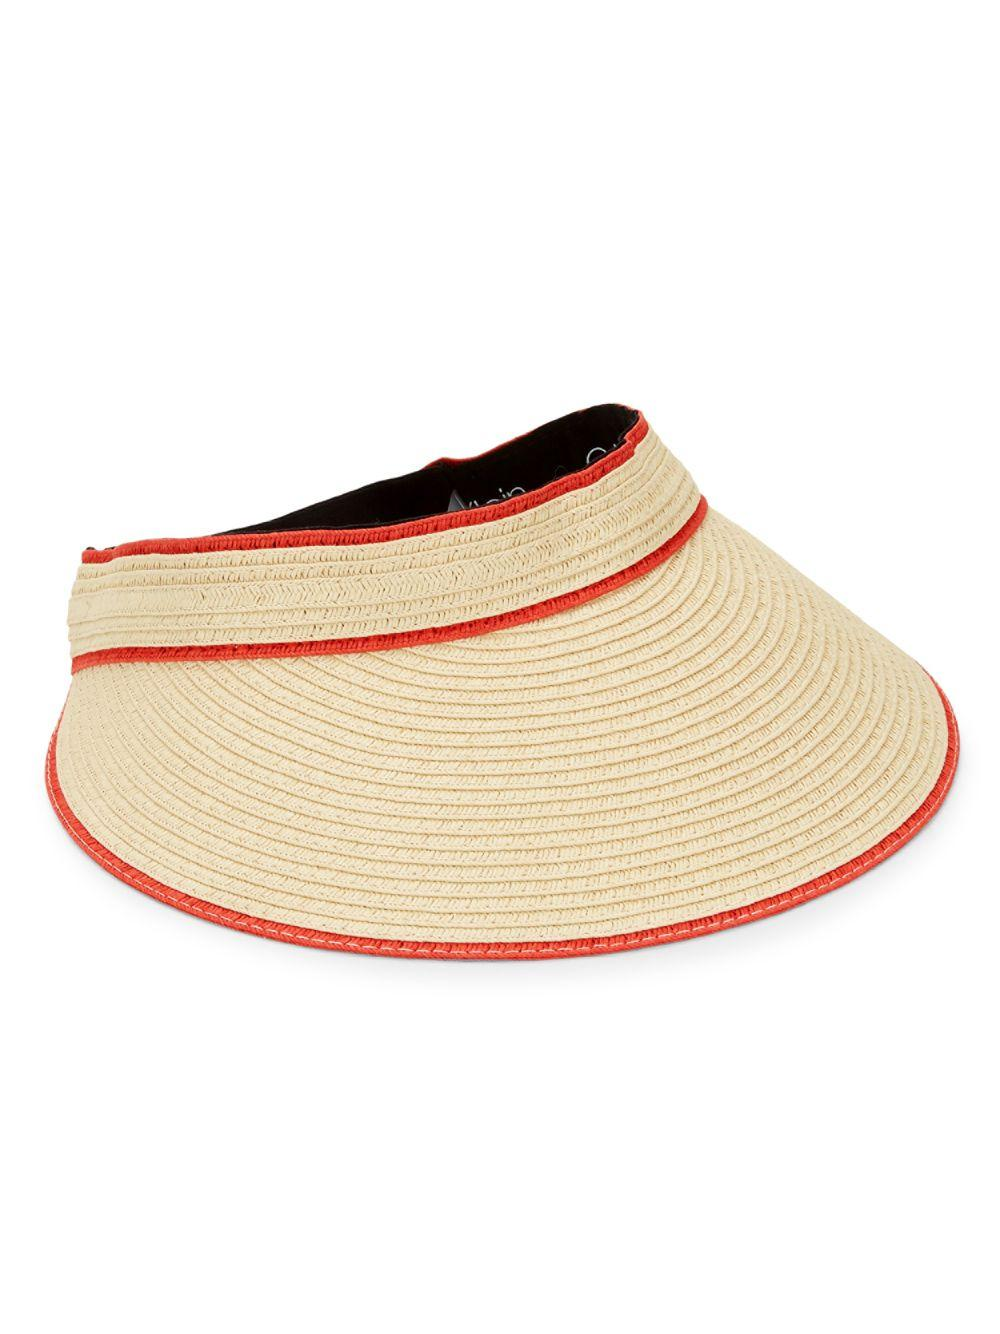 7a2a89acdfe Lyst - Calvin Klein Straw Visor in Natural for Men